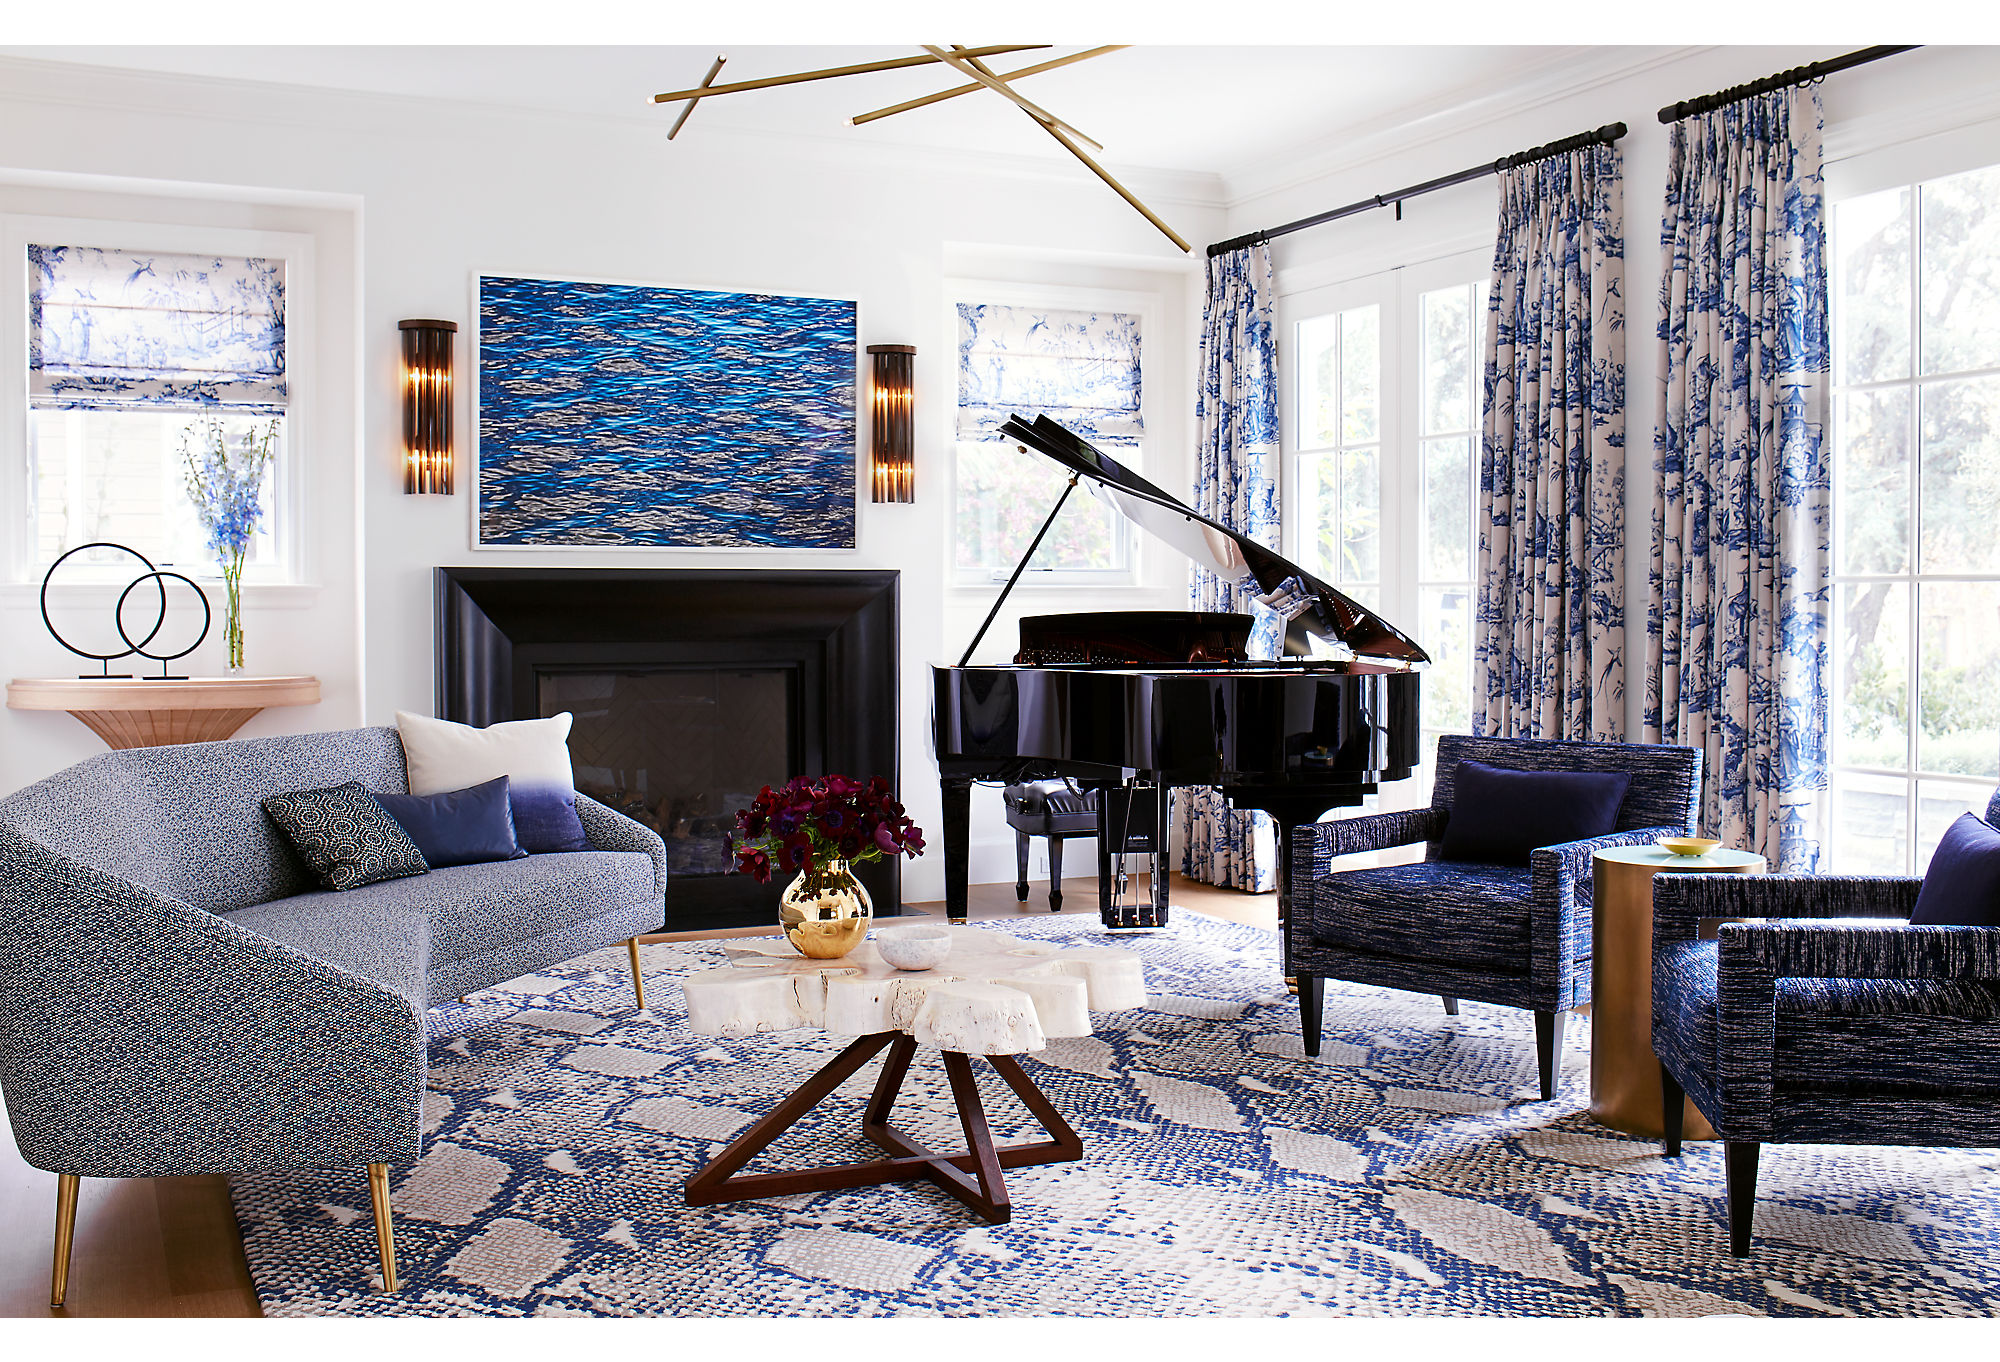 Adam wanted to do a traditional blue-and-white color scheme in the house, but he wanted to do it his way. The wild mix of pattern and color in the space plays on his love of eclecticism and vibrancy while remaining rooted in a traditional palette. The baby grand piano adds a classic note to the atmosphere.